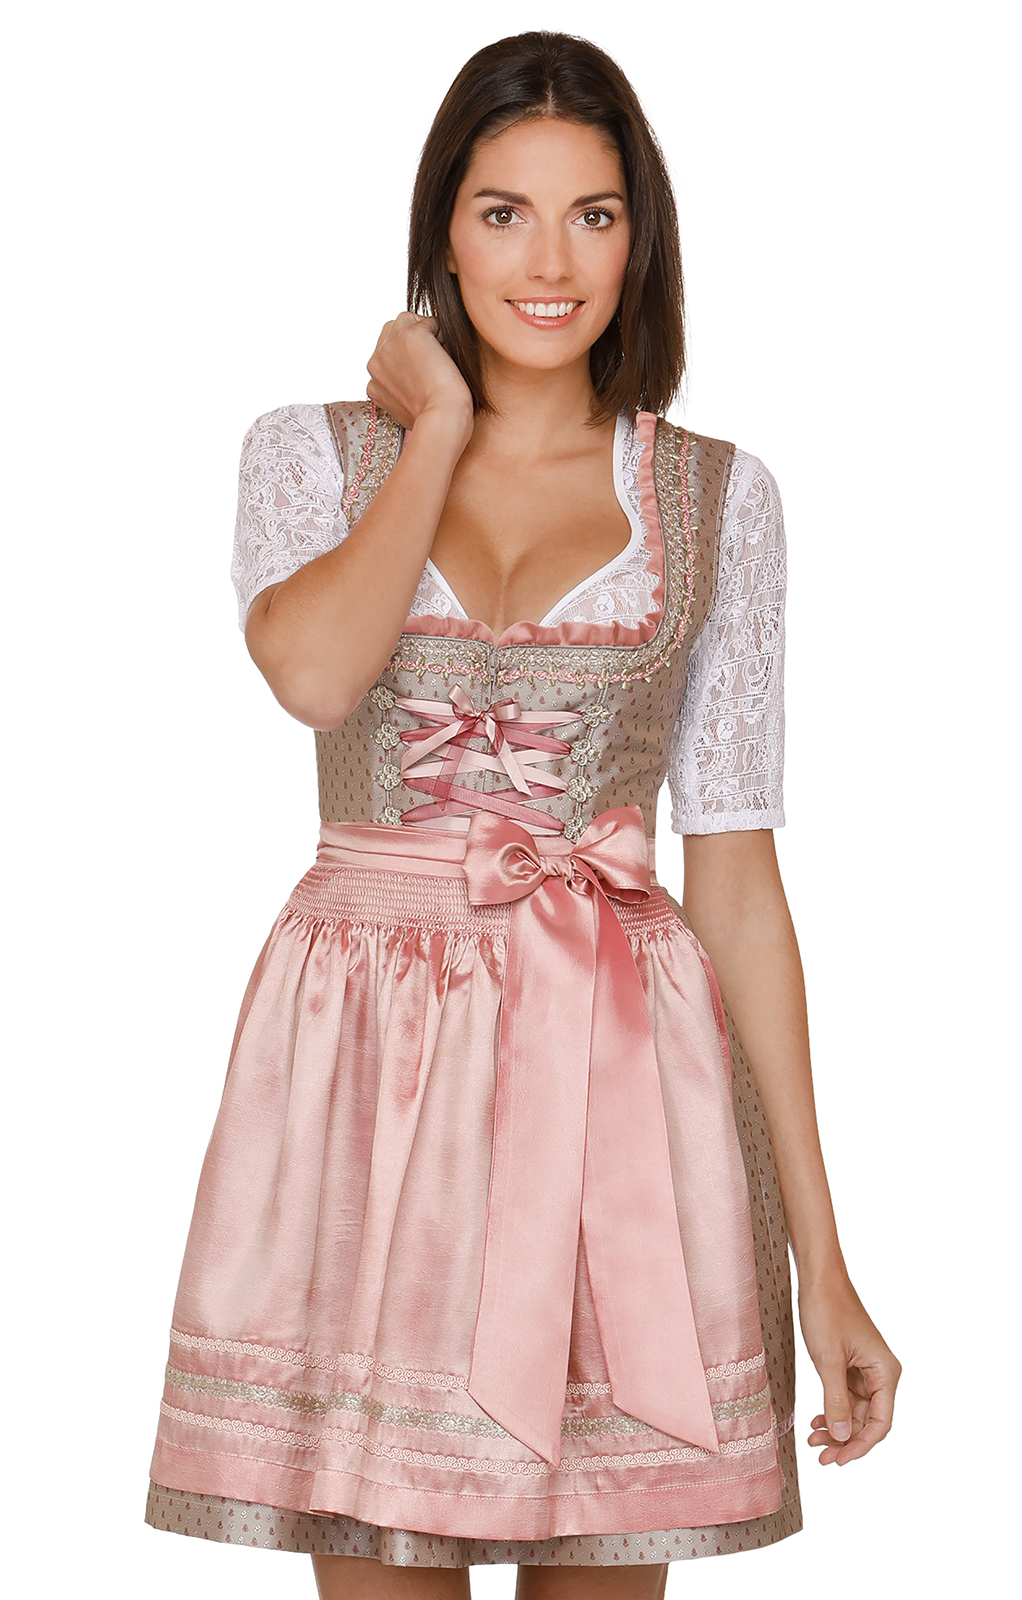 German Mini dirndl 2pcs. Mari brown pink 50 cm von Stockerpoint